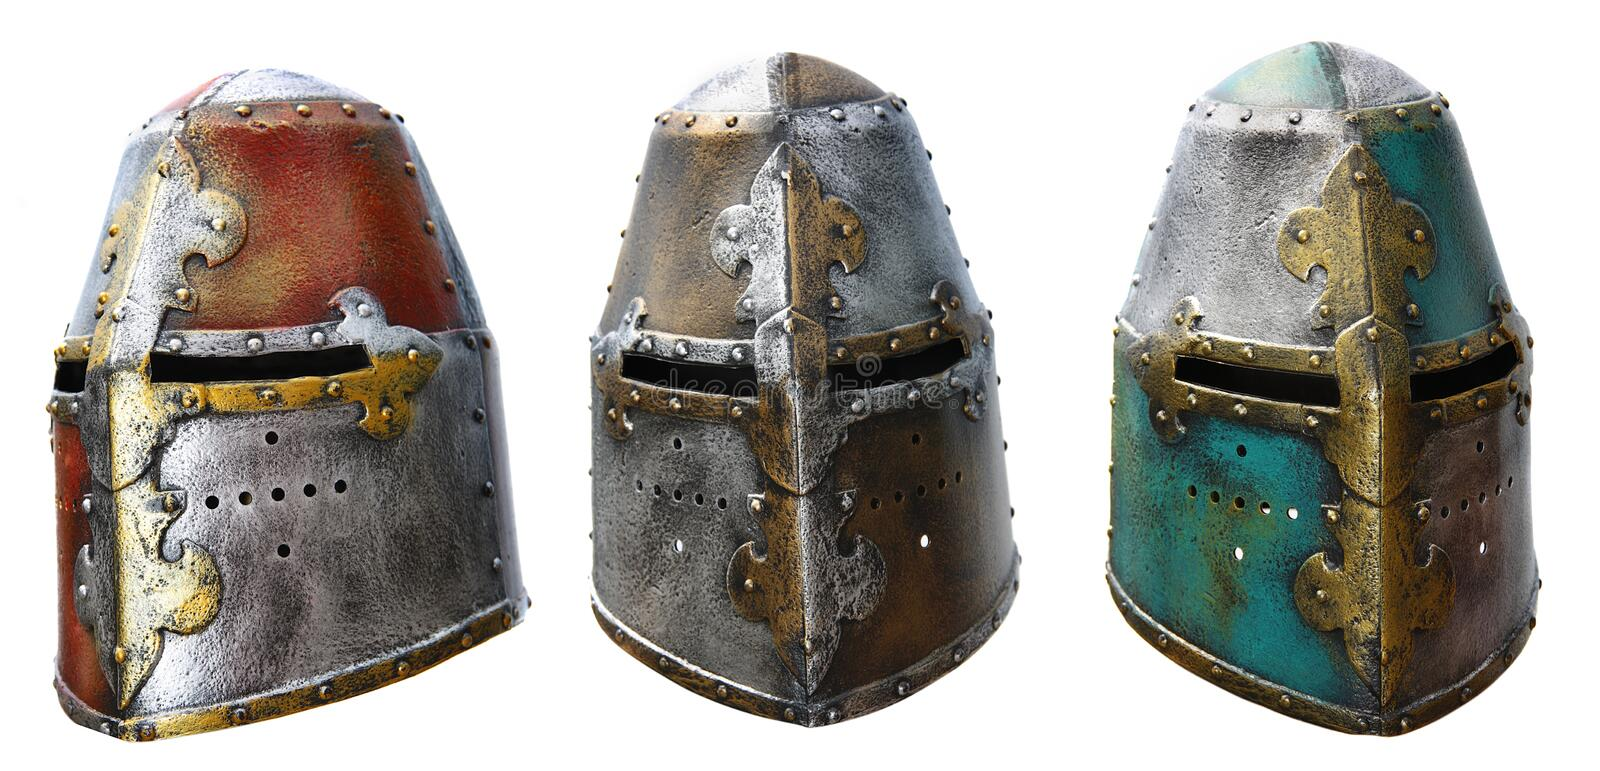 Download Iron helmet stock image. Image of knightly, military, heavy - 5426859